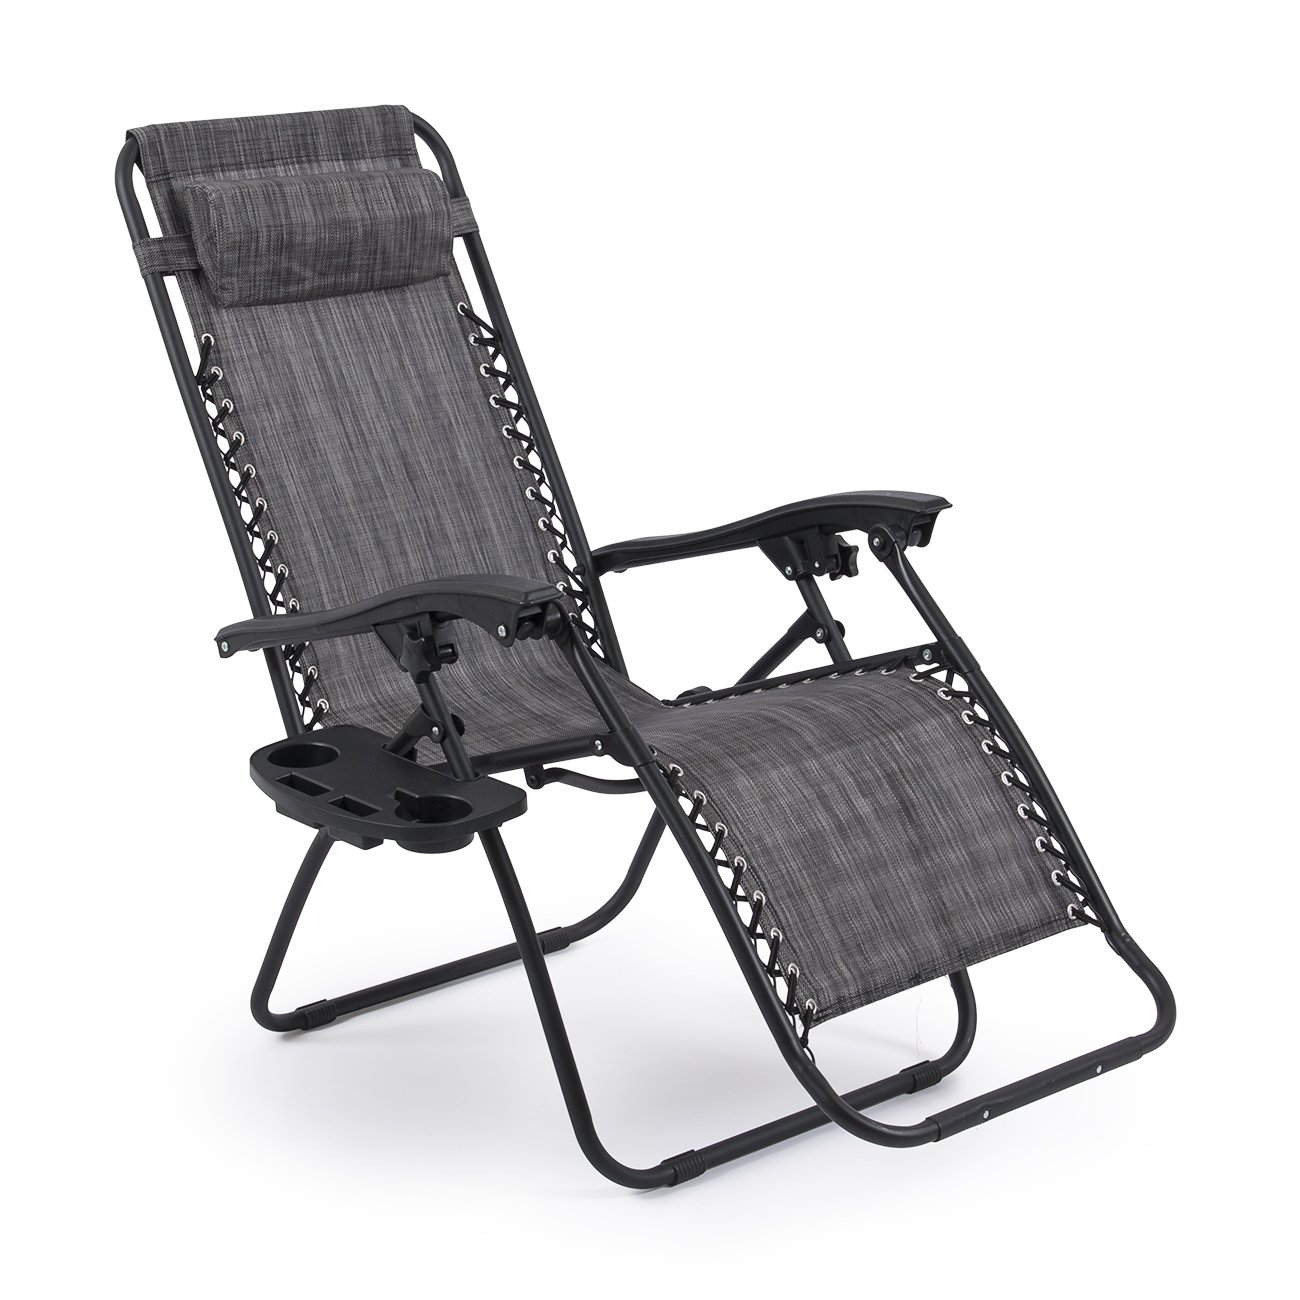 Exceptional 2 Folding Zero Gravity Reclining Lounge Chairs Utility